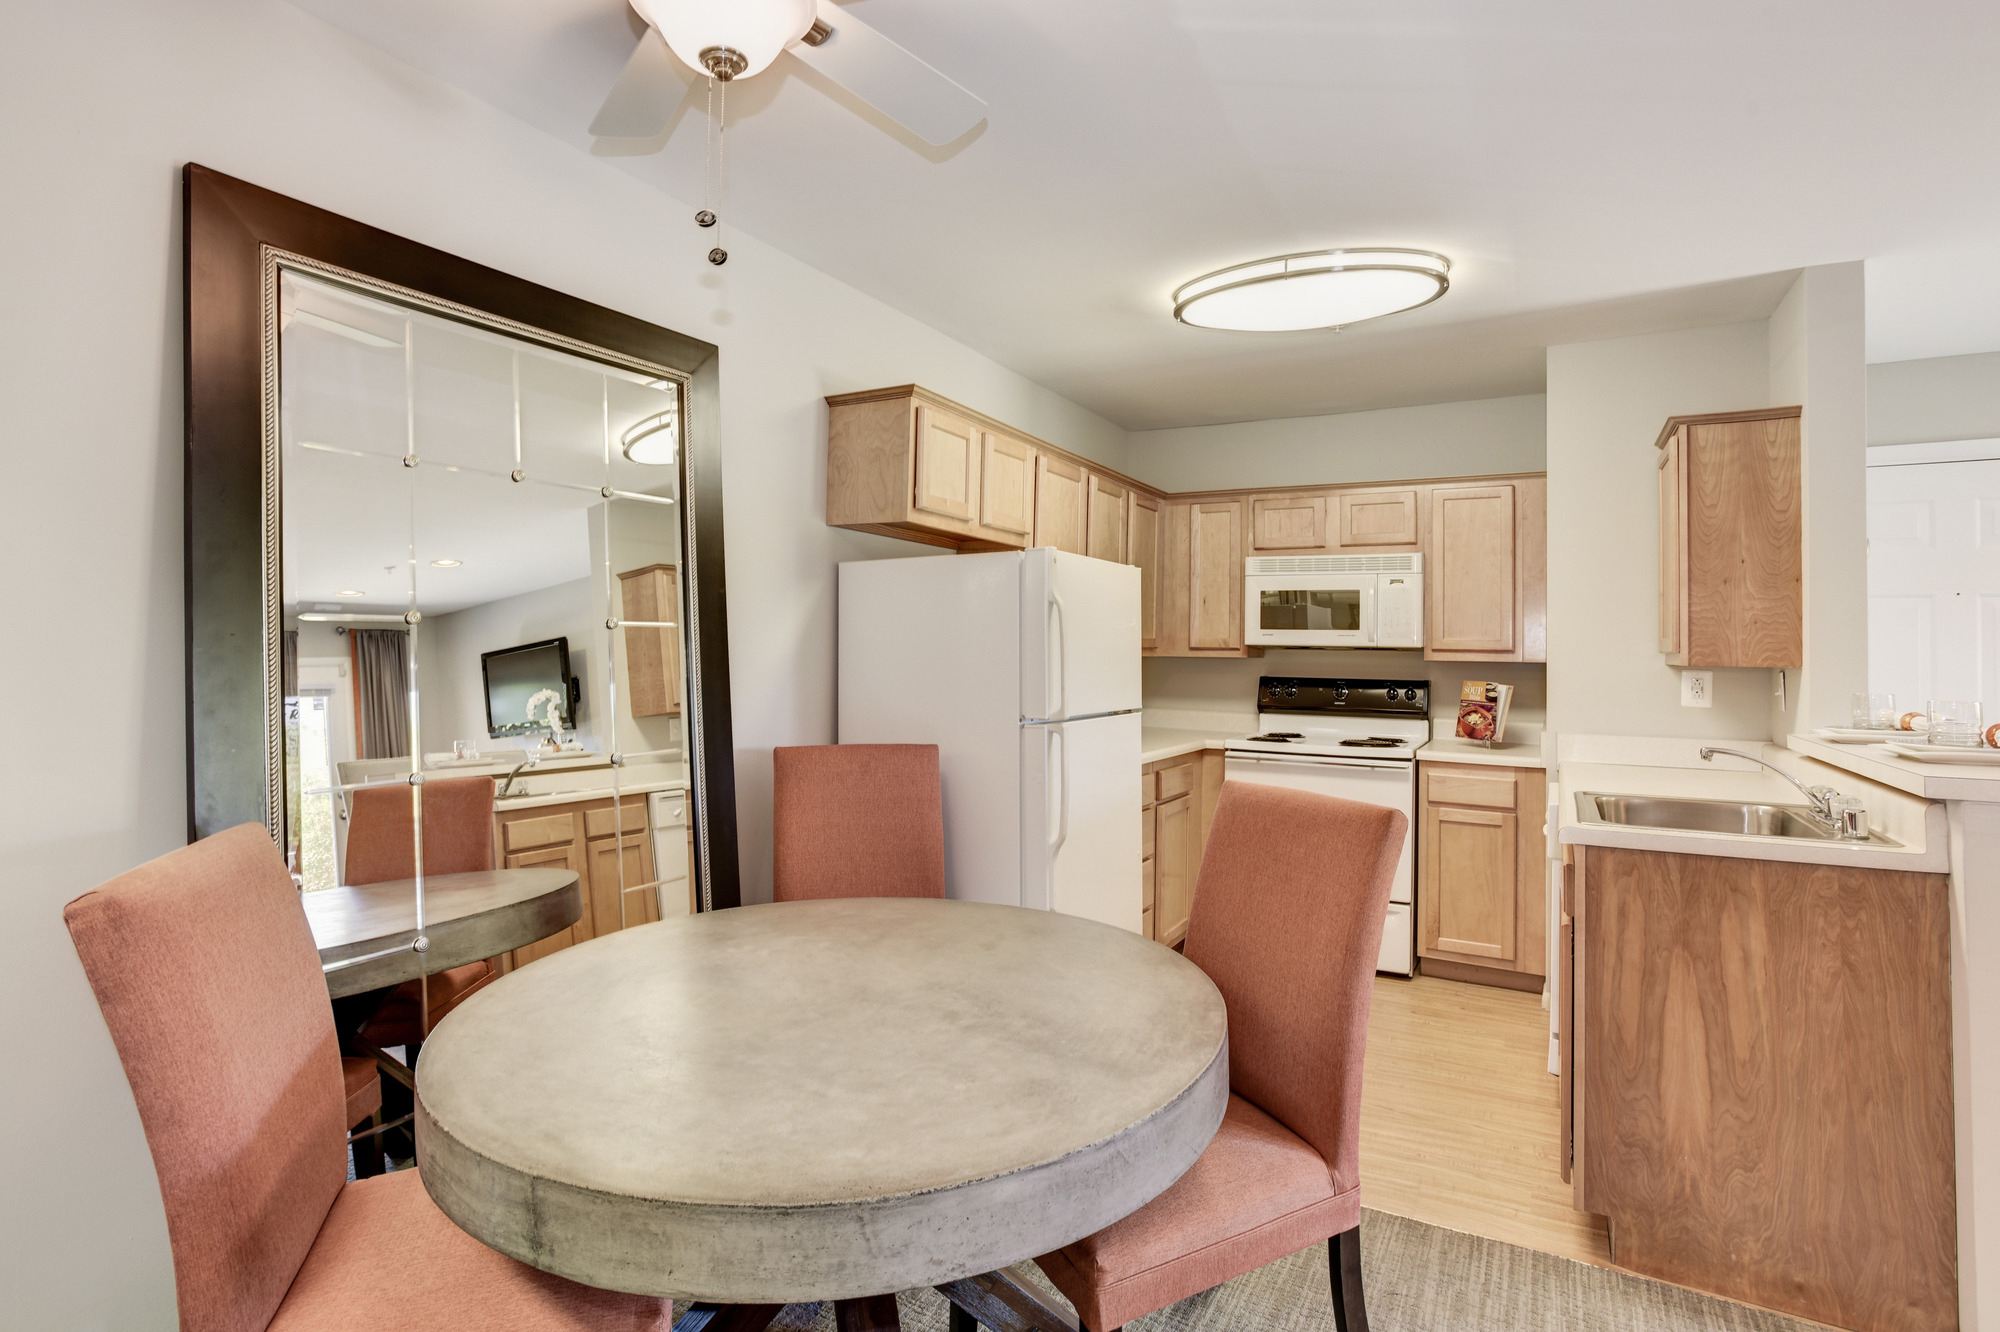 Fox Run Apartments in Edgewood, MD 21040: Fully Equipped Kitchen with Separate Dining Area